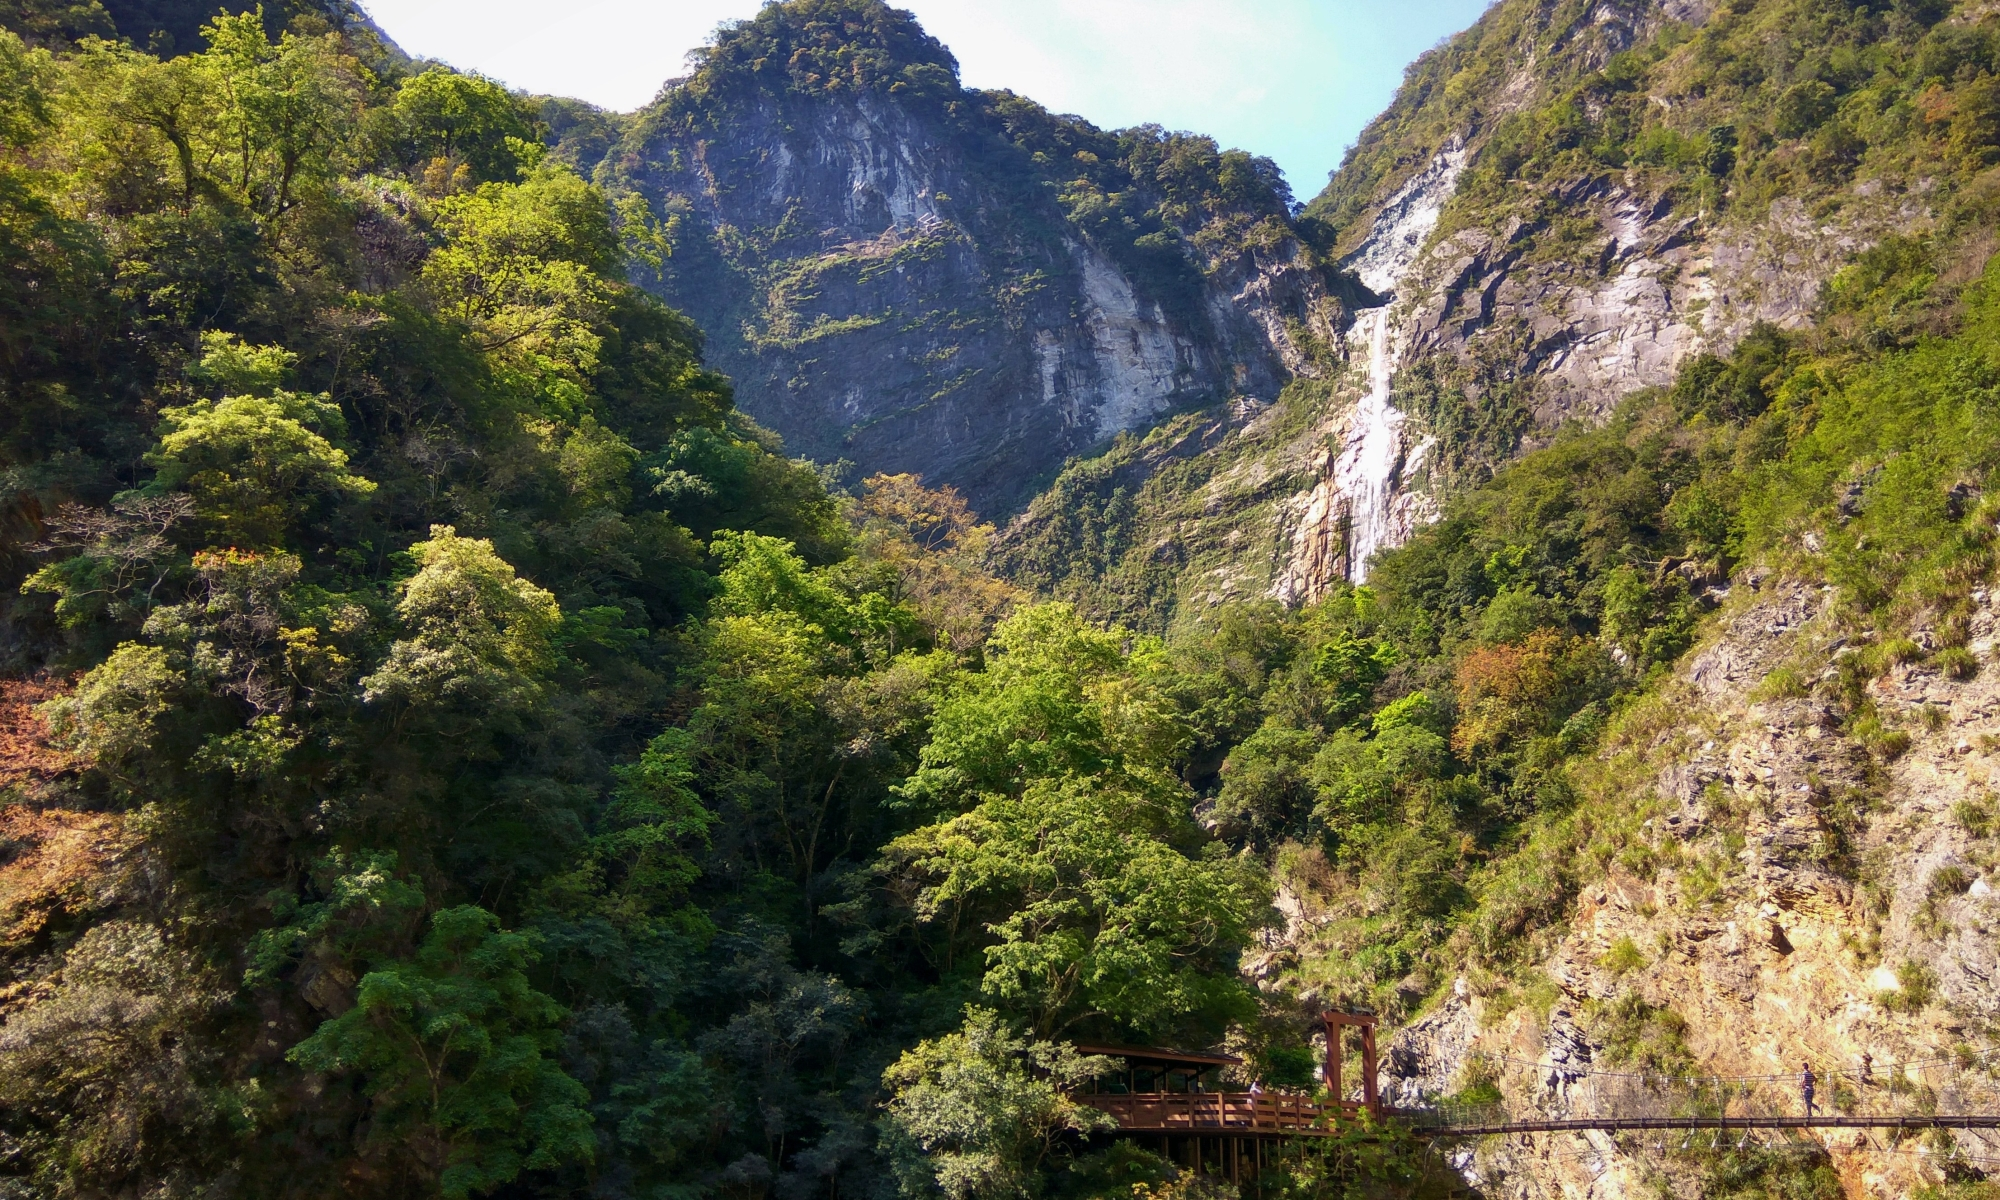 Taroko George National Park